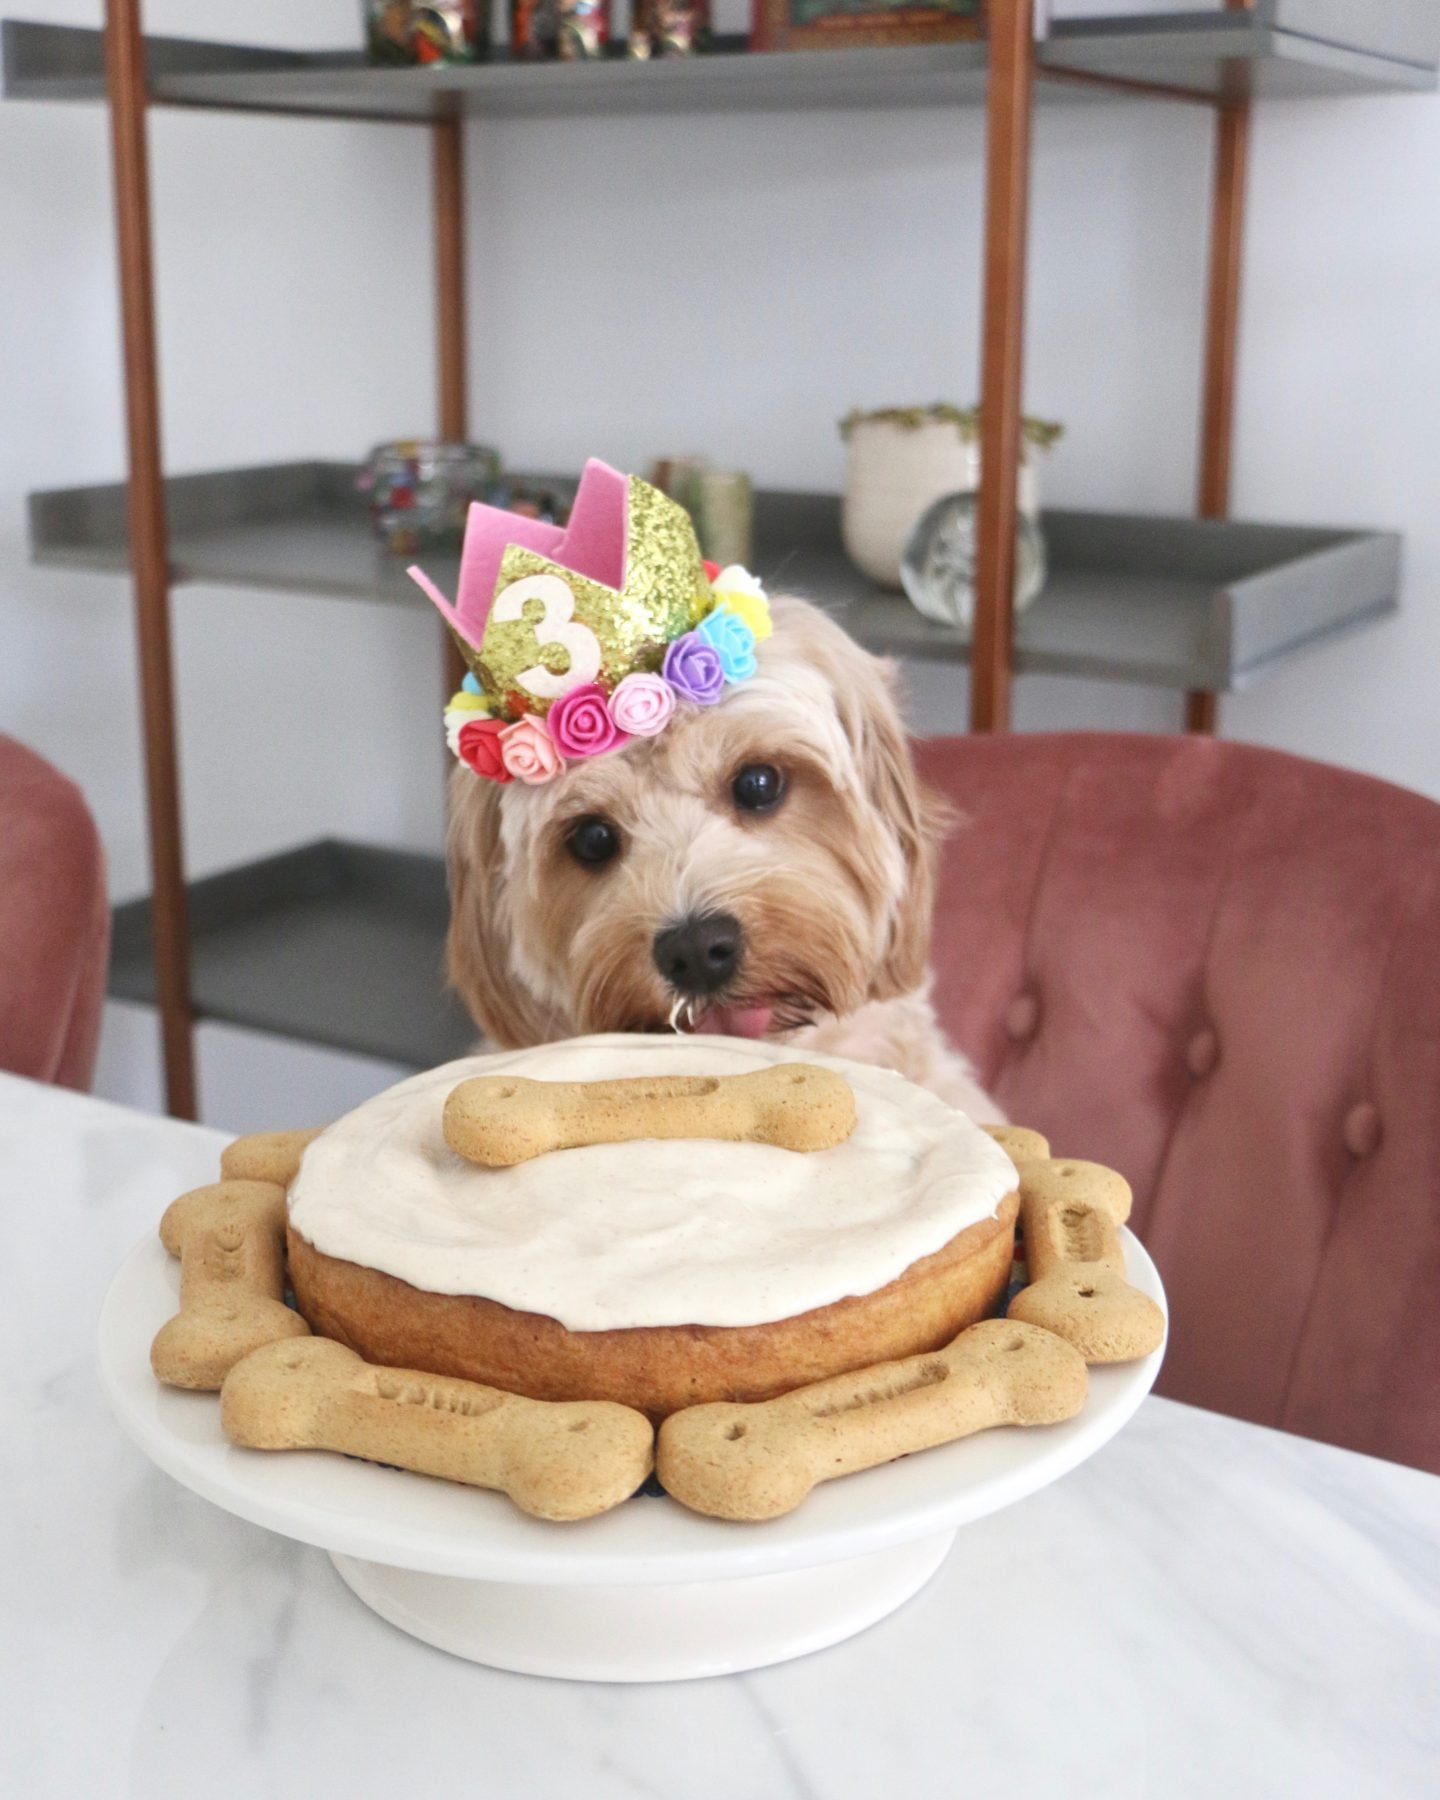 Wondrous Dog Birthday Cake Recipe Banana Peanut Butter Funny Birthday Cards Online Chimdamsfinfo